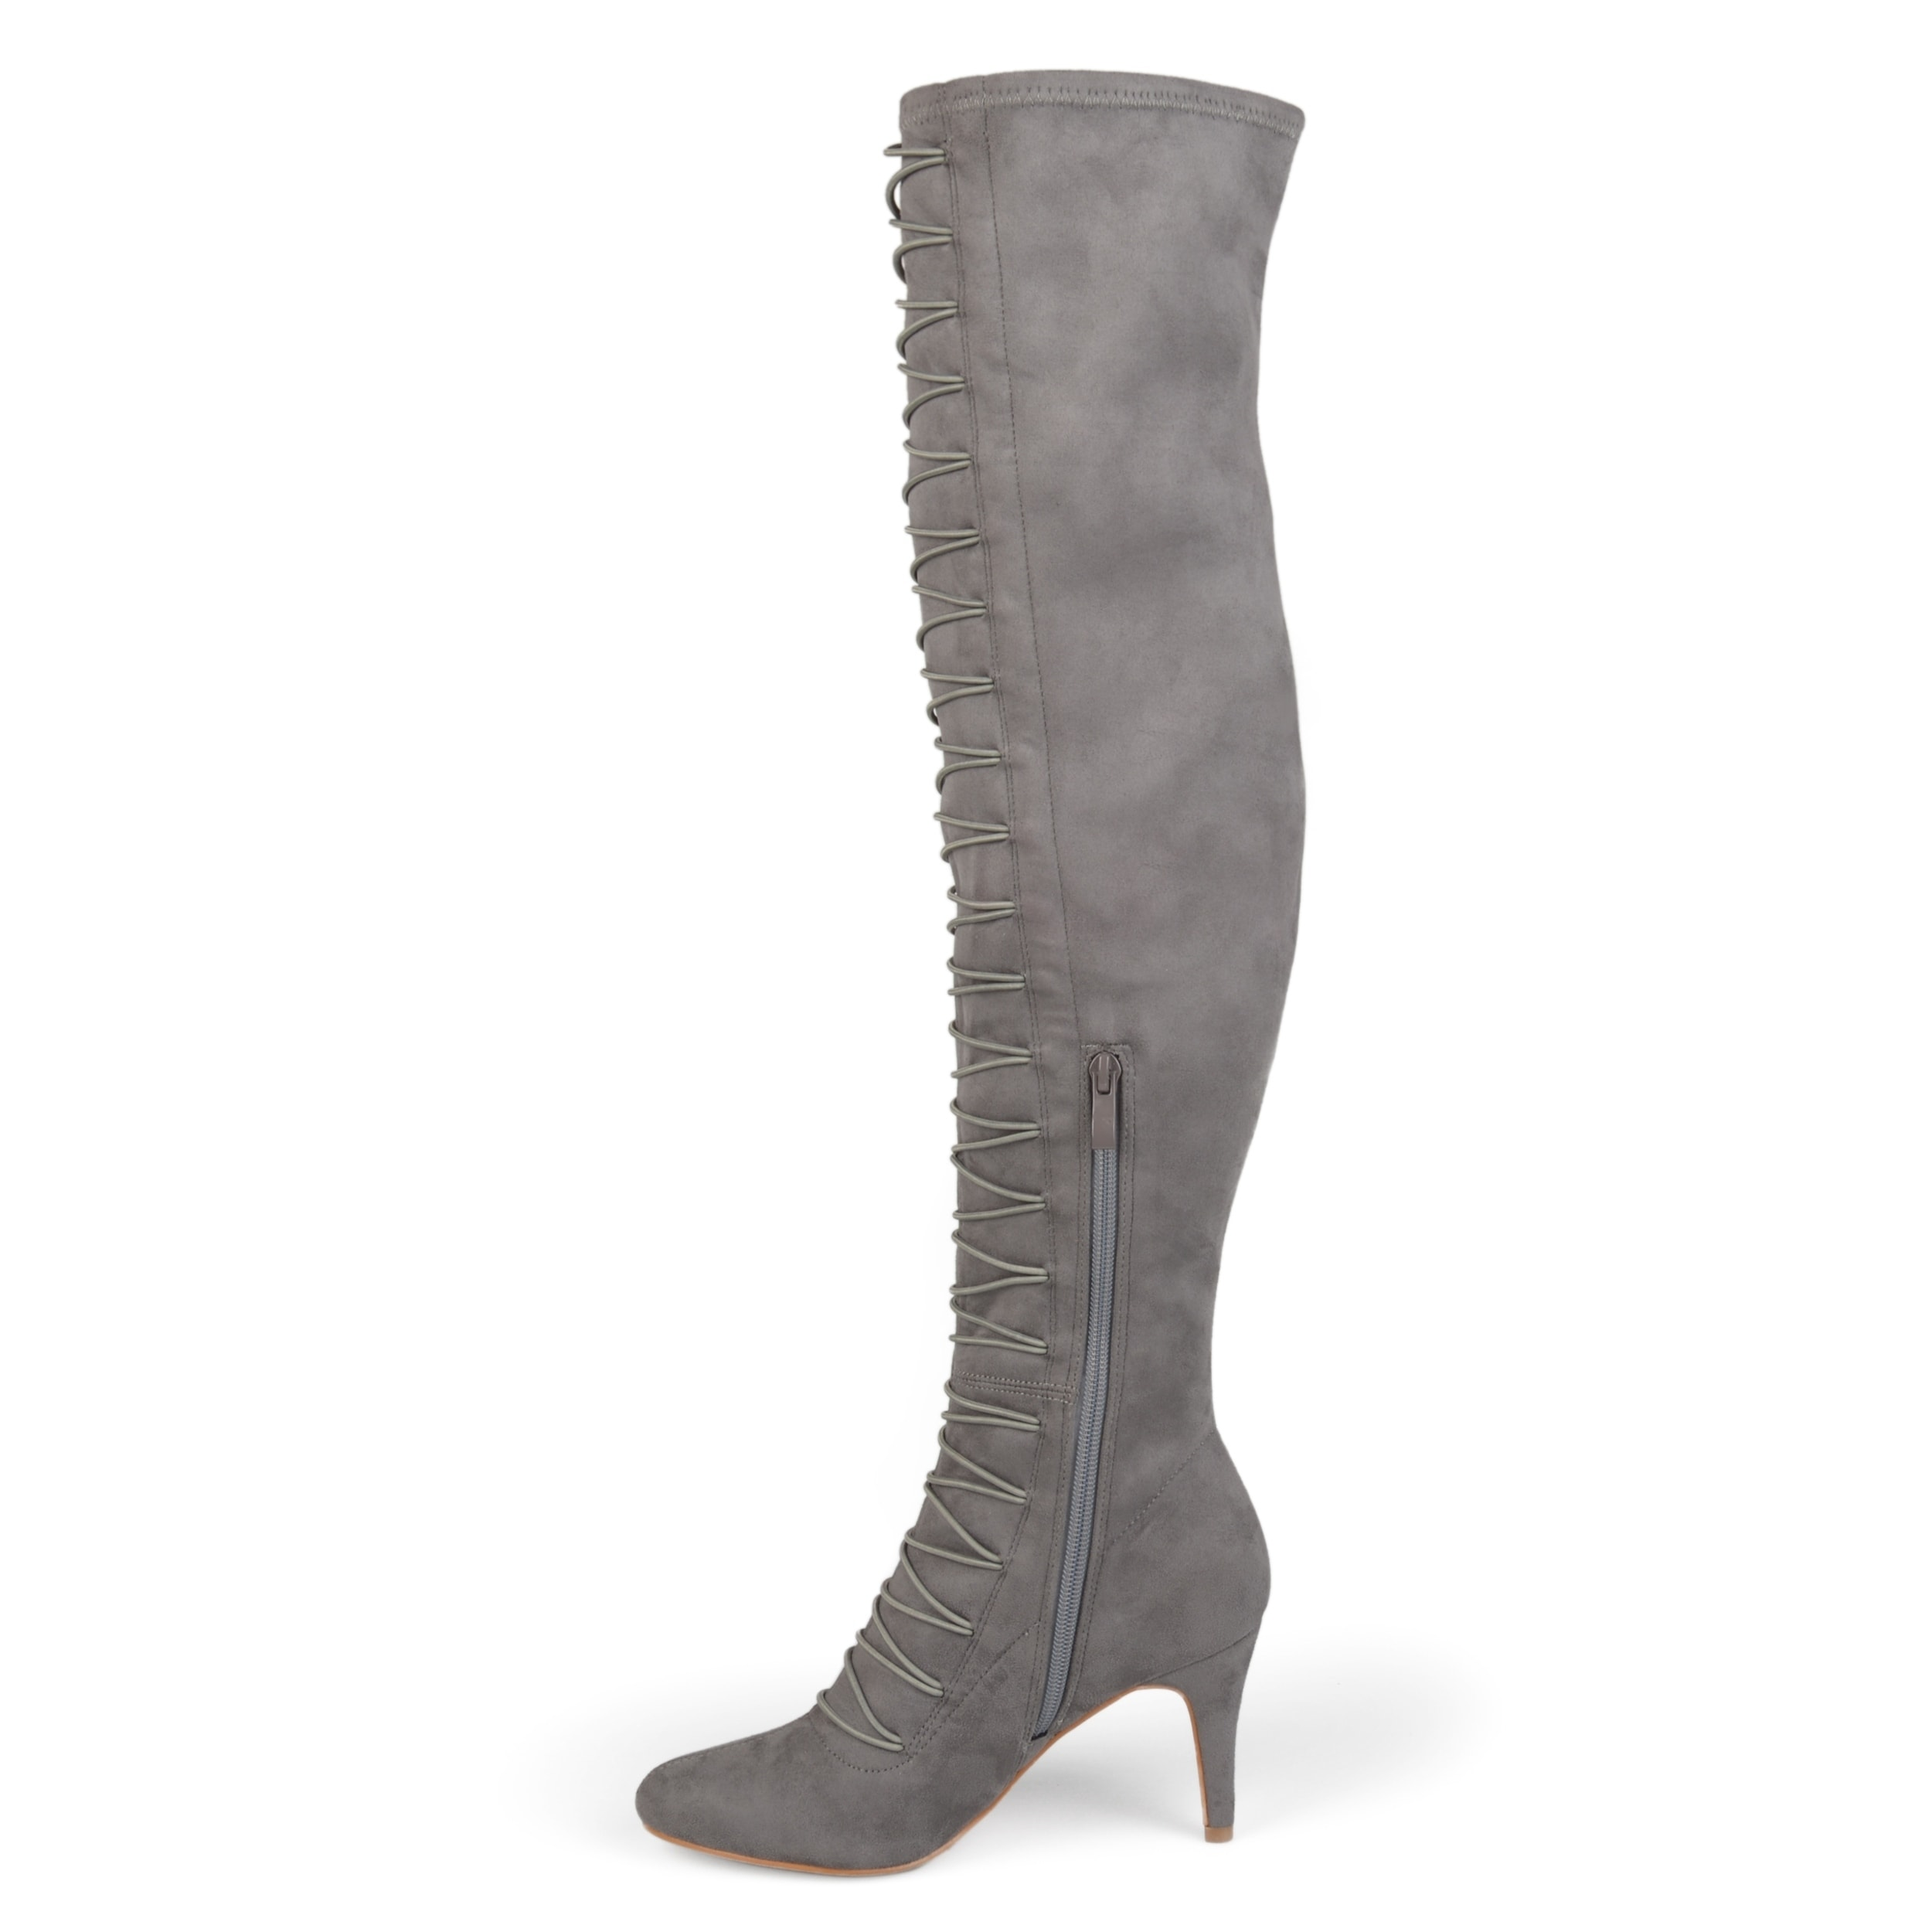 01286ebba95d1 Journee Collection Women's 'Trill' Regular and Wide Calf Boots